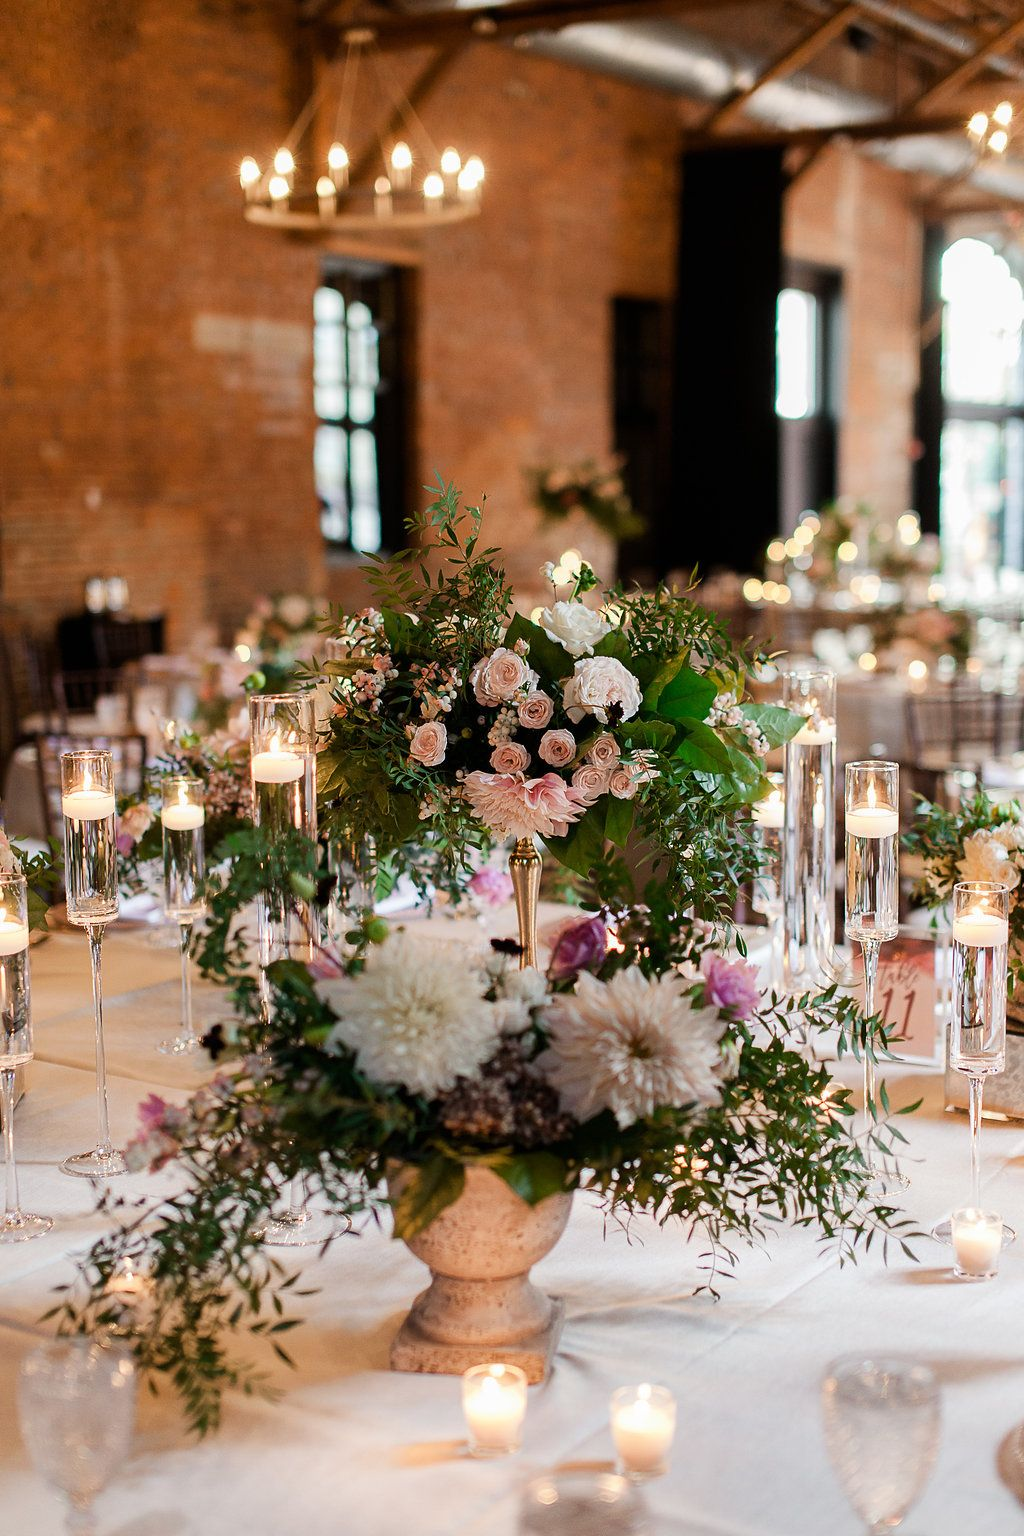 Posy Jenny Haas Photography Mmj Weddings And Events Aiden And Grace Event Rentals Highline Car House Ohio Wedding Venues Loose Bouquet Wedding Decorations